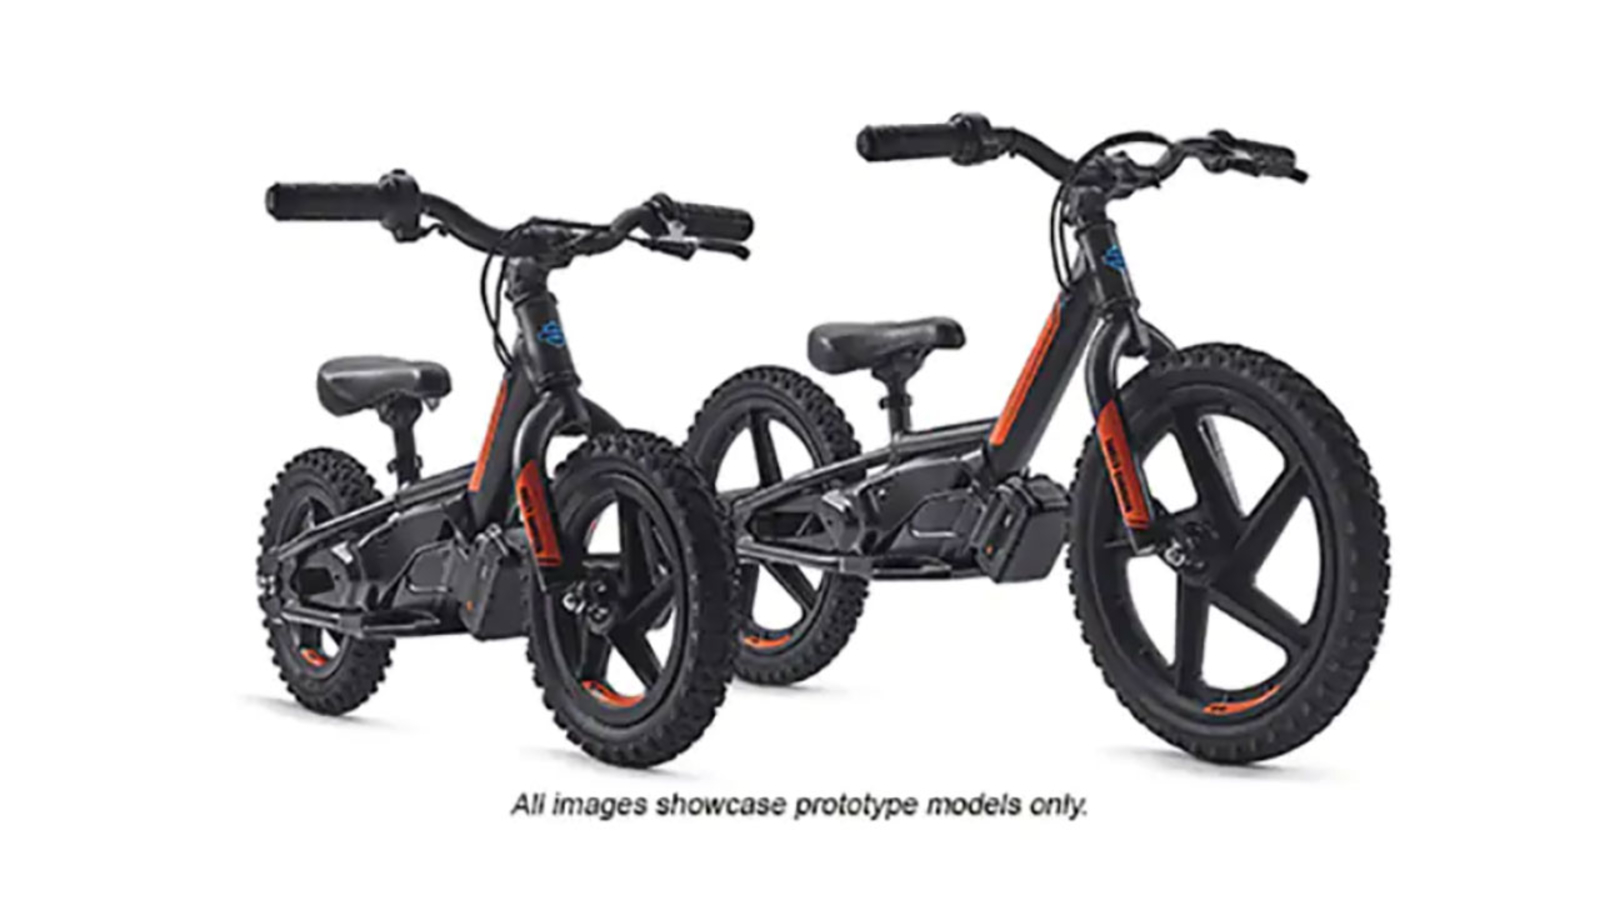 Harley Davidson To Sell Electric Bike For Kids Following